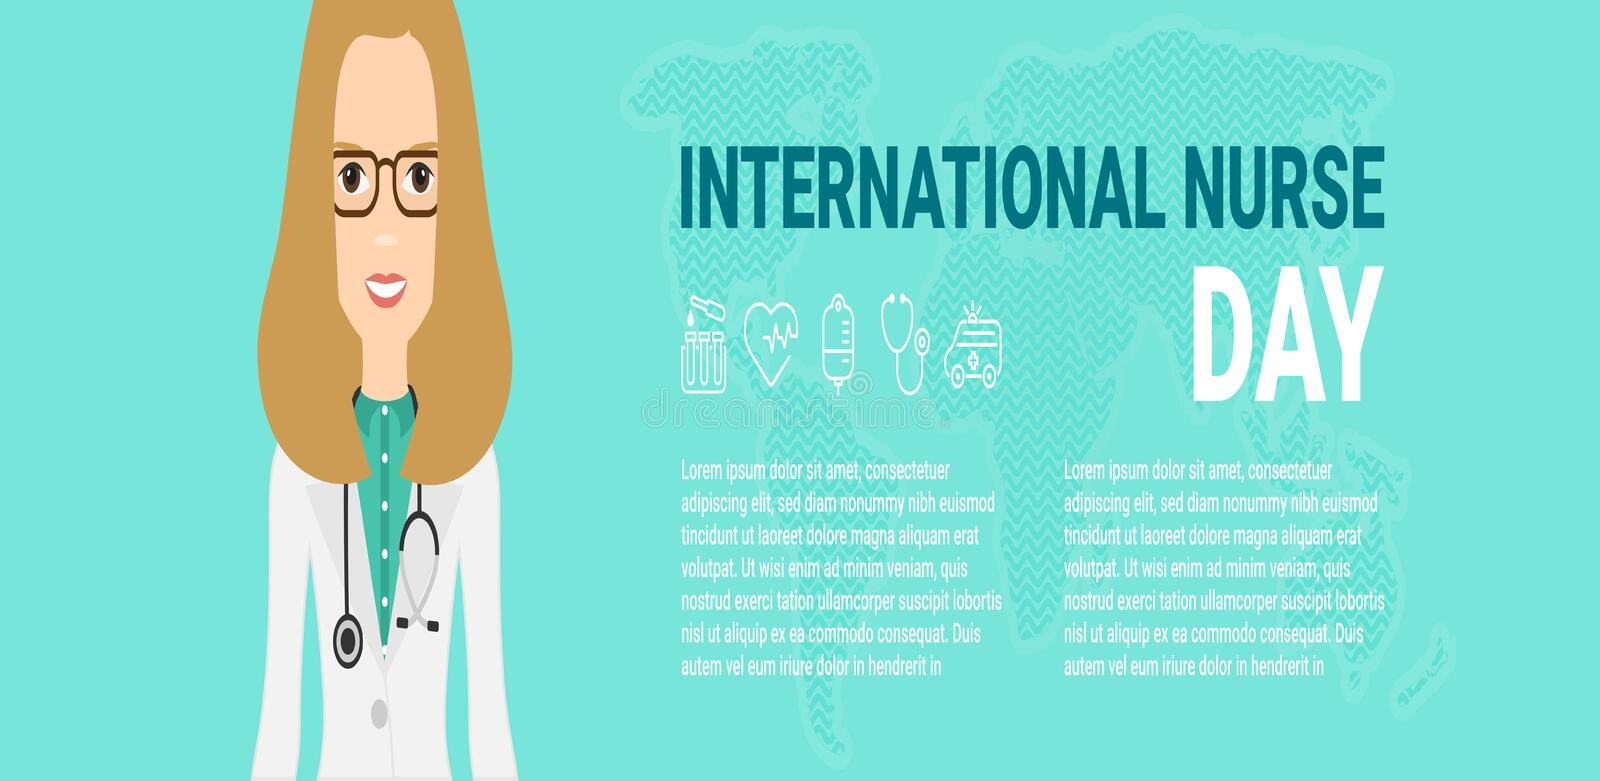 Vector illustration for International Nurse Day celebration. Can be used for poster, banner, background, icon, wallpaper stock illustration